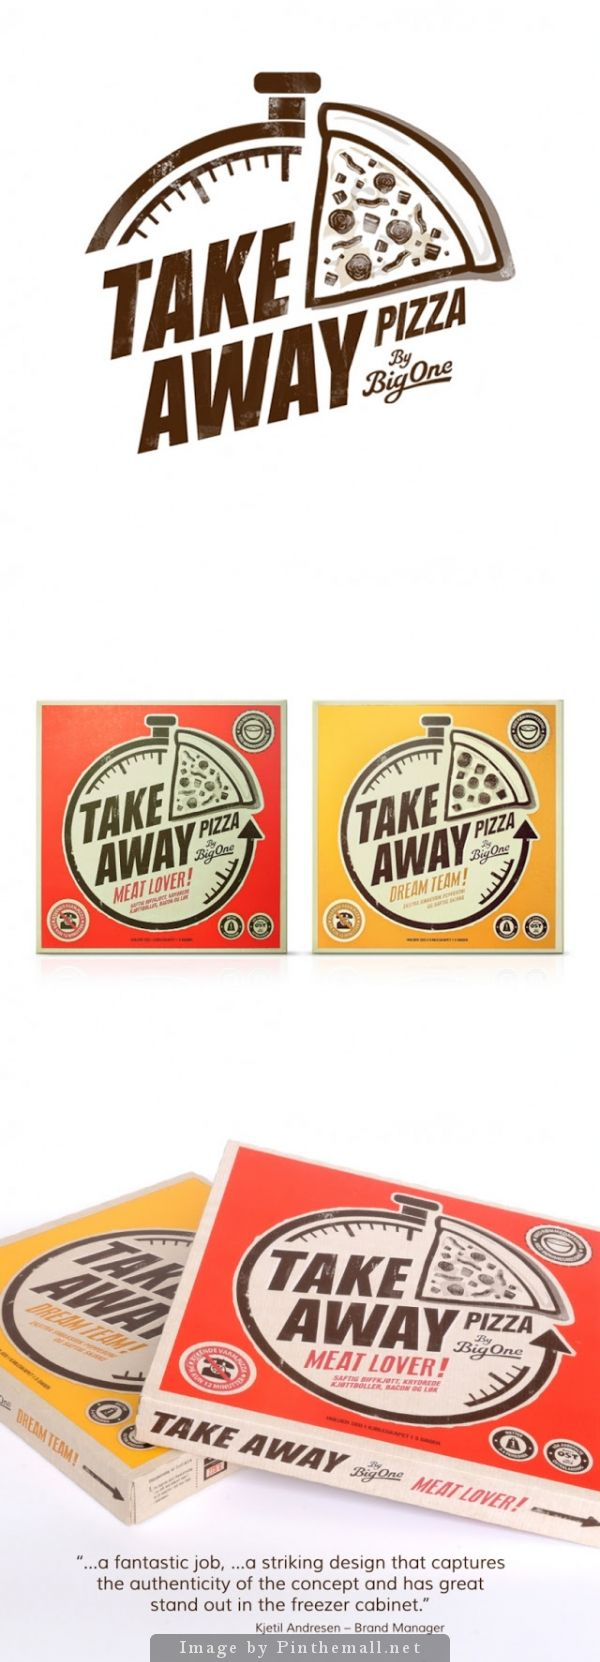 Take Away by Big One Creative agency: Illumination Type of work: Commercial work Country: London, UK